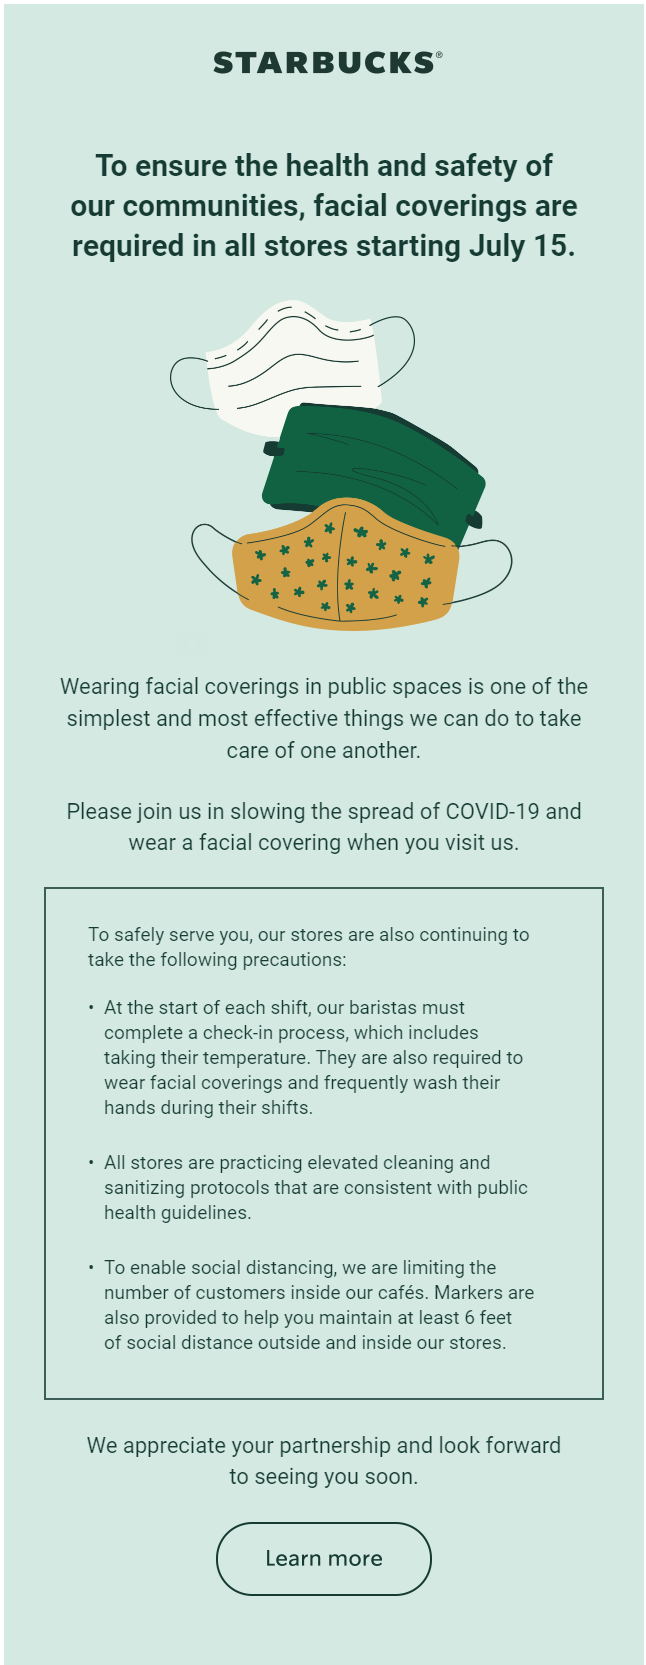 email marketing for covid